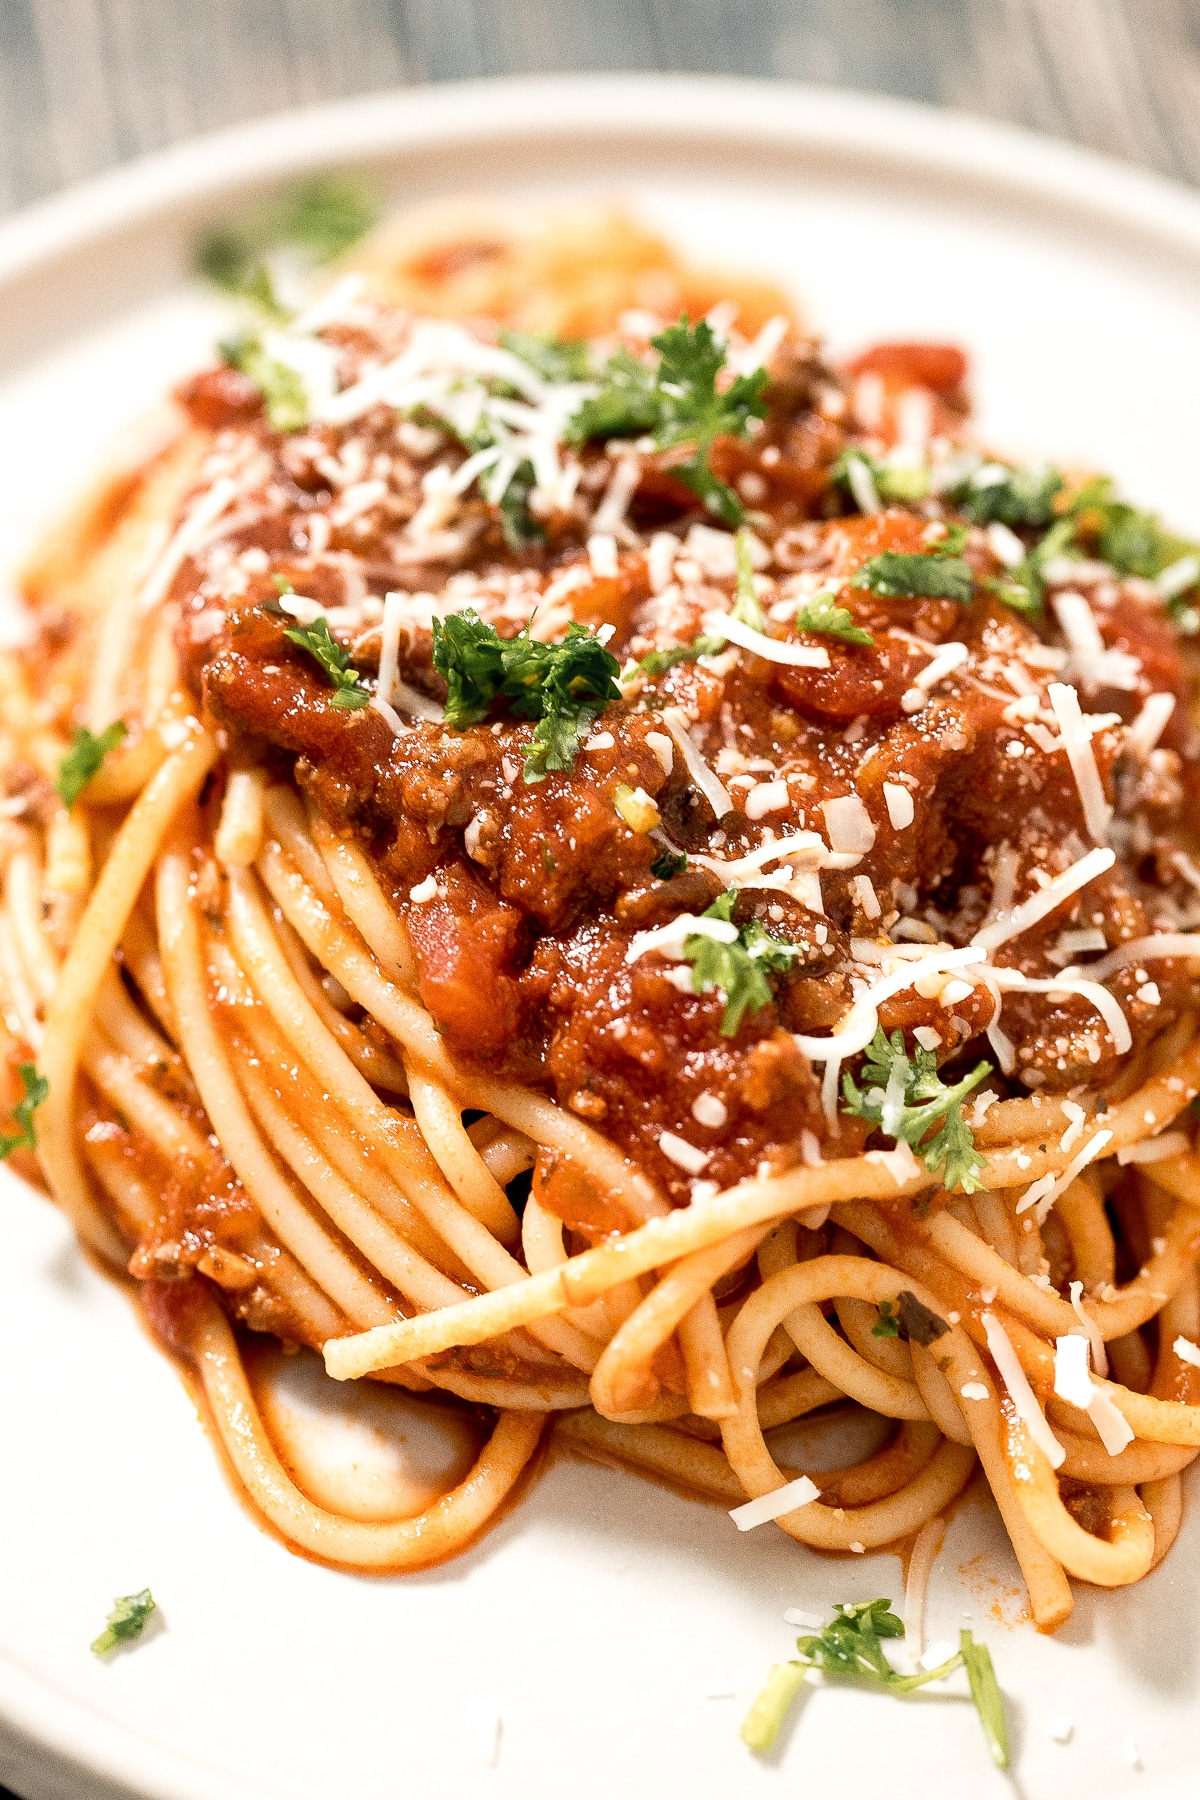 Chili Linguine with Parmesan Cheese